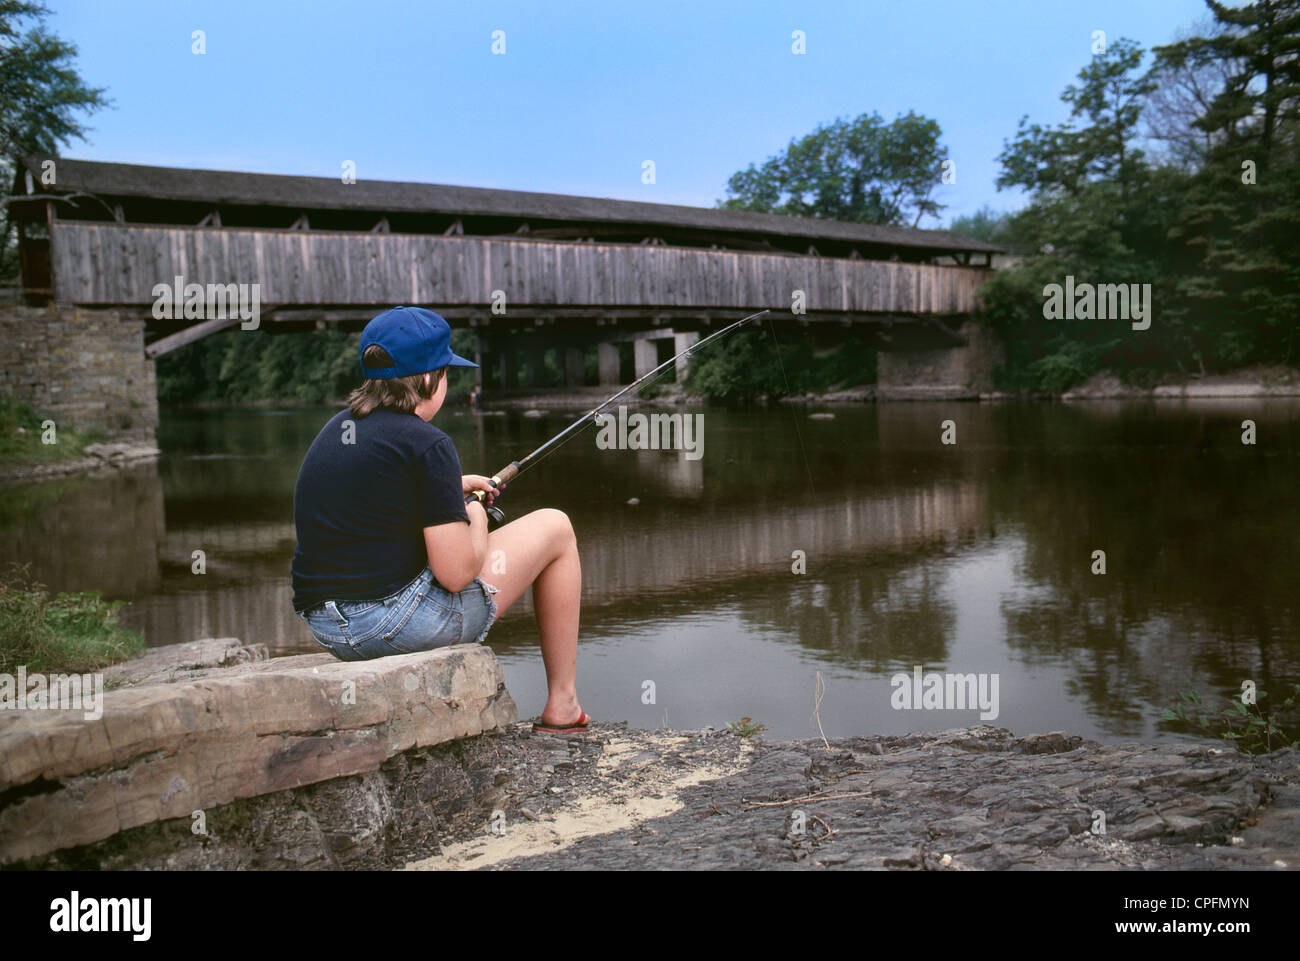 Boy Fishing in River - Stock Image